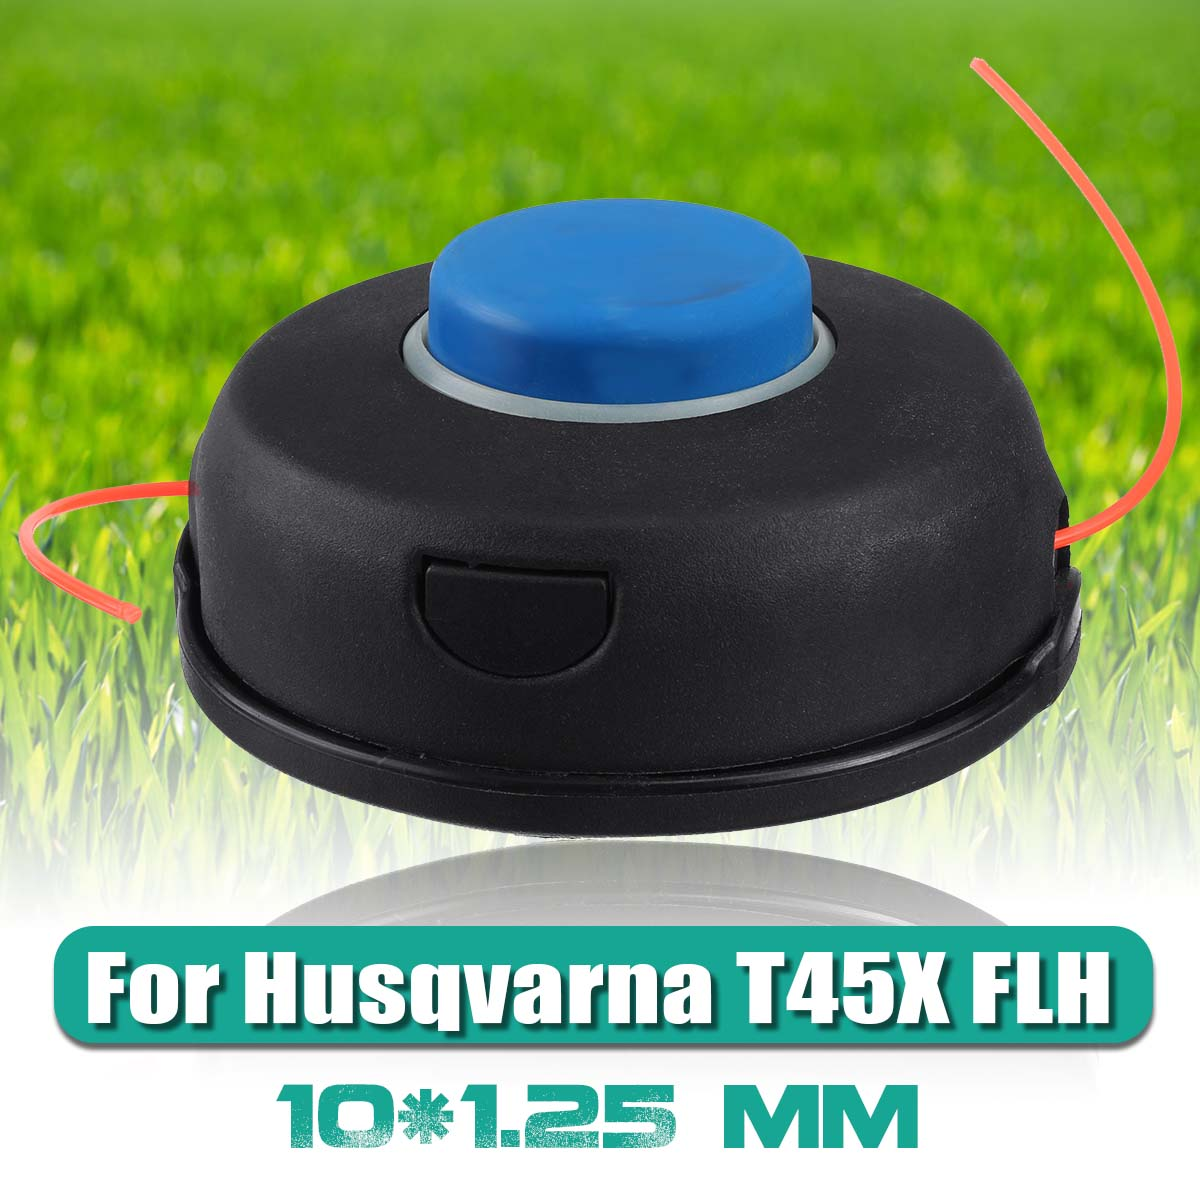 Replacement Trimmer Head For Husqvarna T45X FLH 10*1.25 Mm